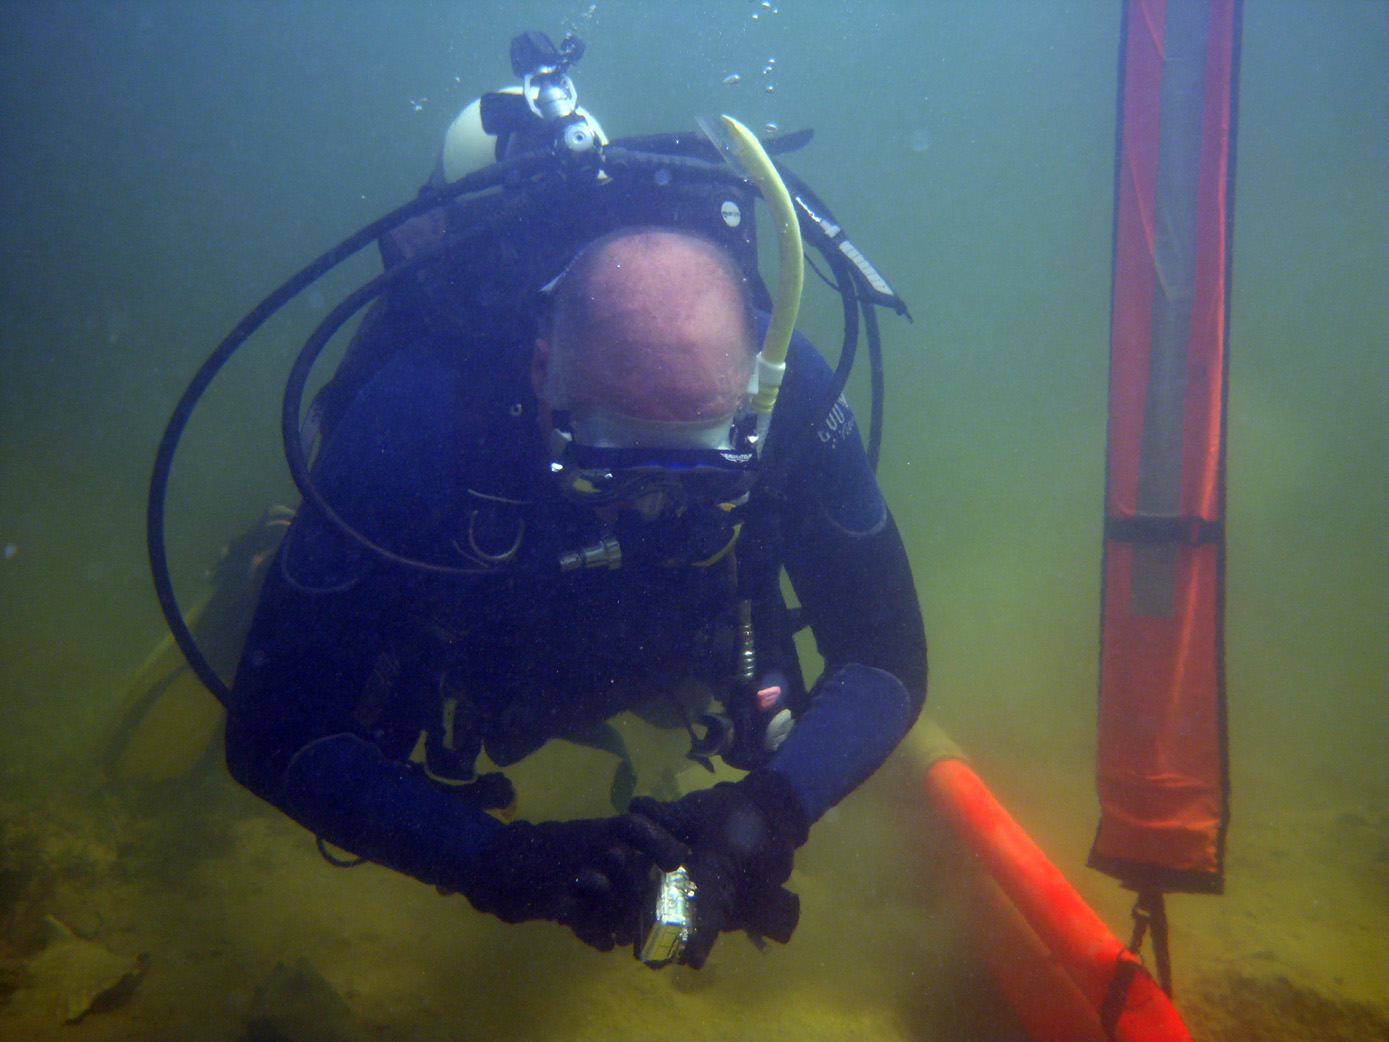 Raimund Krob on   The Tile Wreck   in 2013